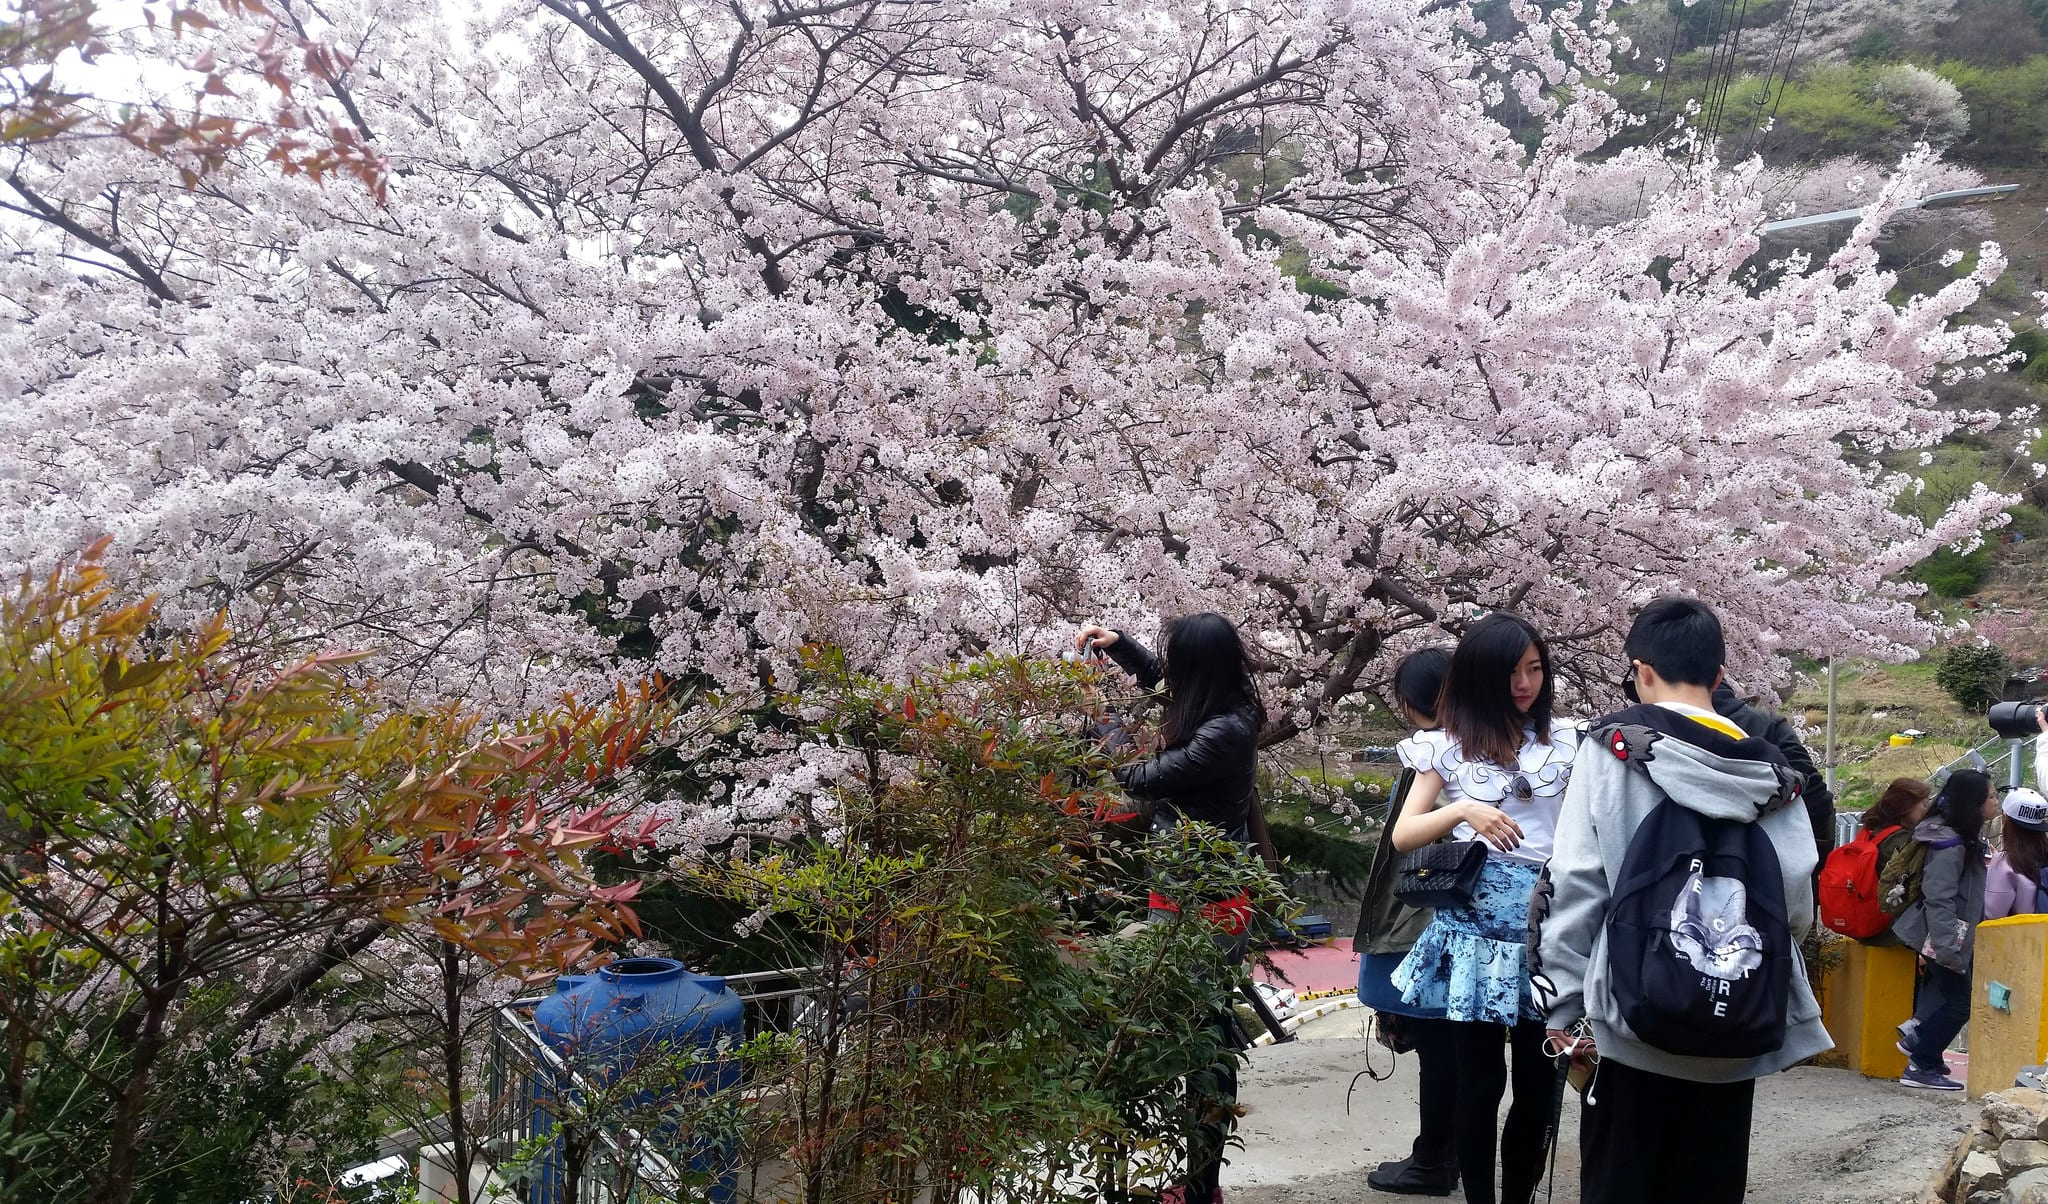 Gamcheon Culture Village busan cherry blossom